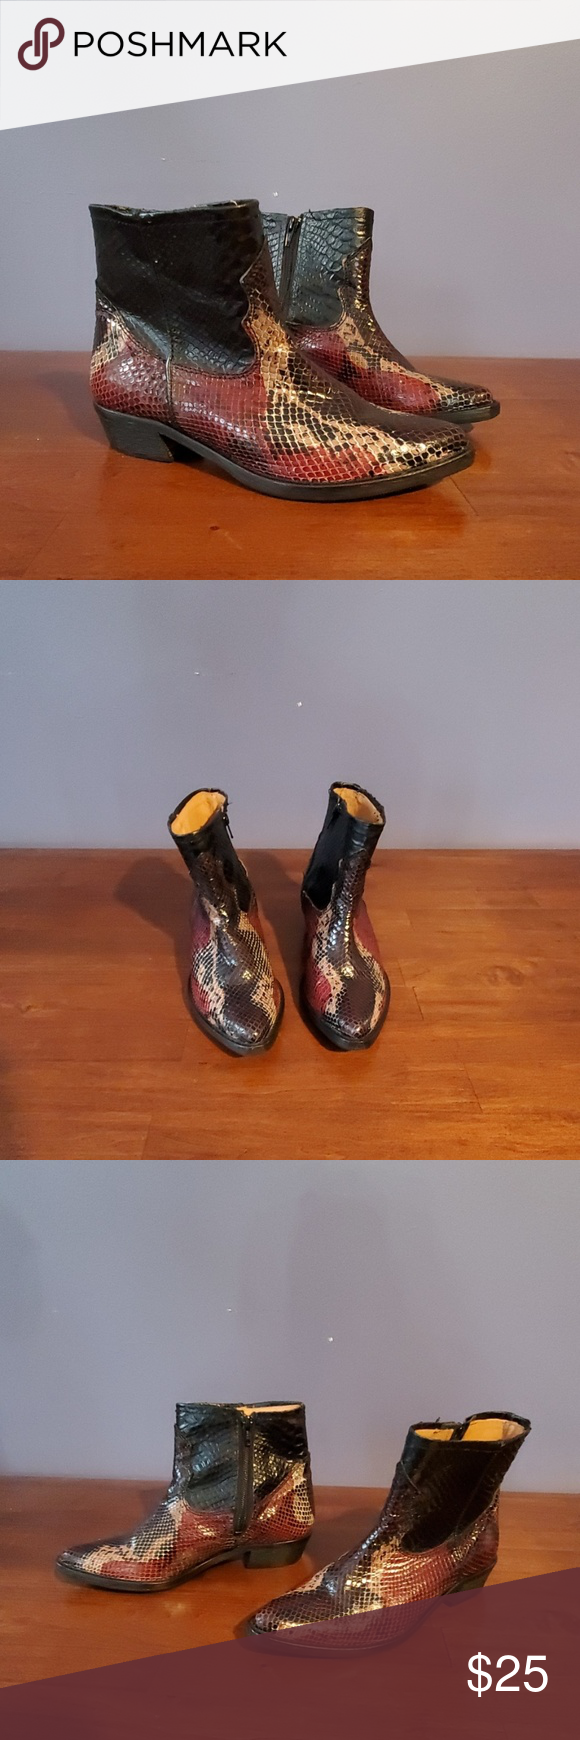 NEVER WORN Zara Snakeskin Print Boots - size 36 Never worn. Beautiful print & super stylish. Had sole protectors installed but never got to wear these.   US 6 / EU 36  Let me know if you have any questions! Zara Shoes #snakeprintbootsoutfit